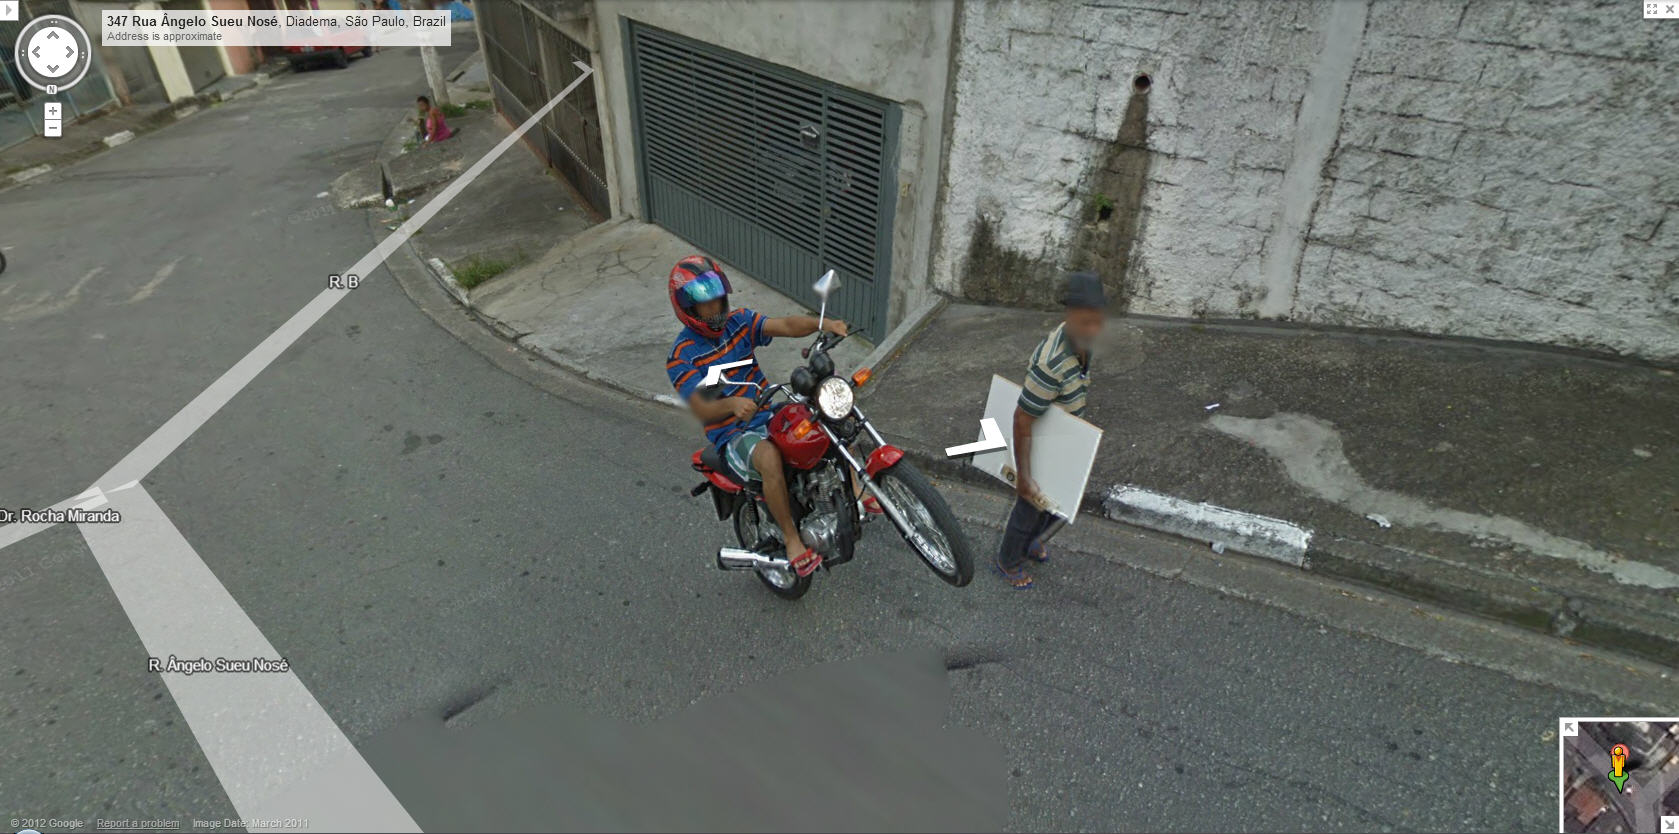 google-maps-street-view-brazil-captures-a-guy-showing-off-for-the-camera